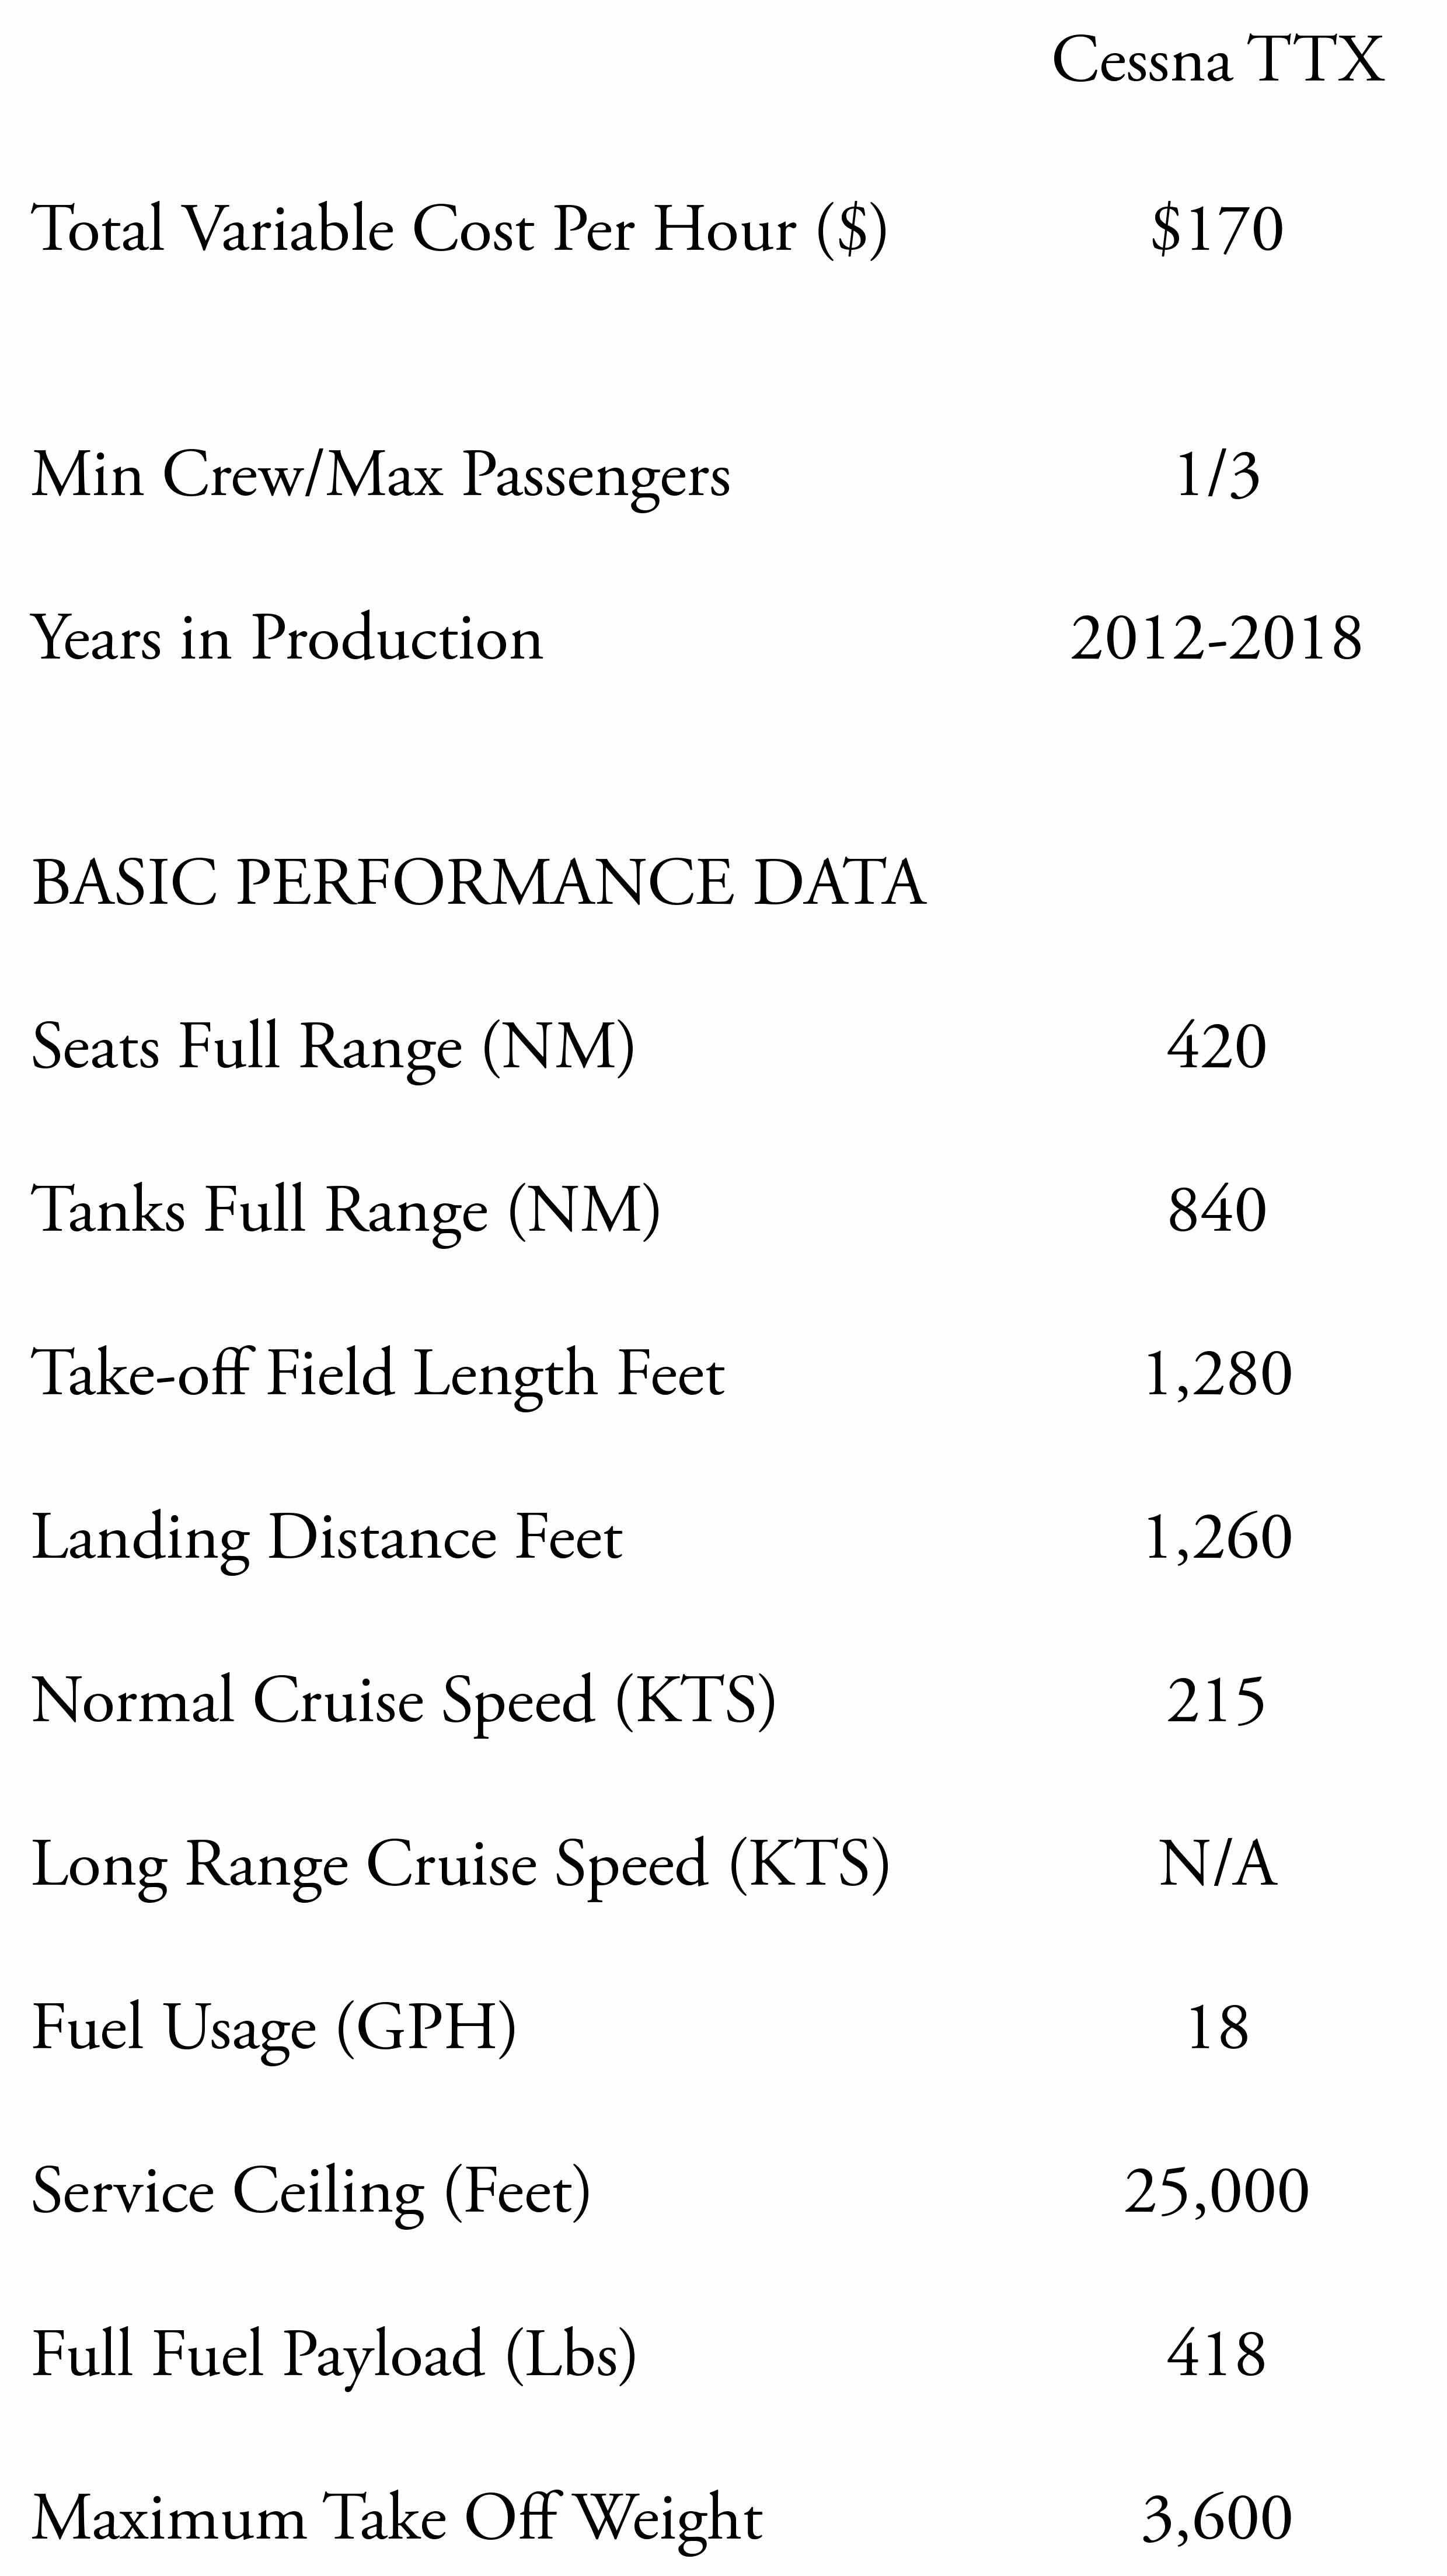 Cessna TTx Specifications, comparison of ownership costs, variable costs, fuel usage, take off and landing weights.